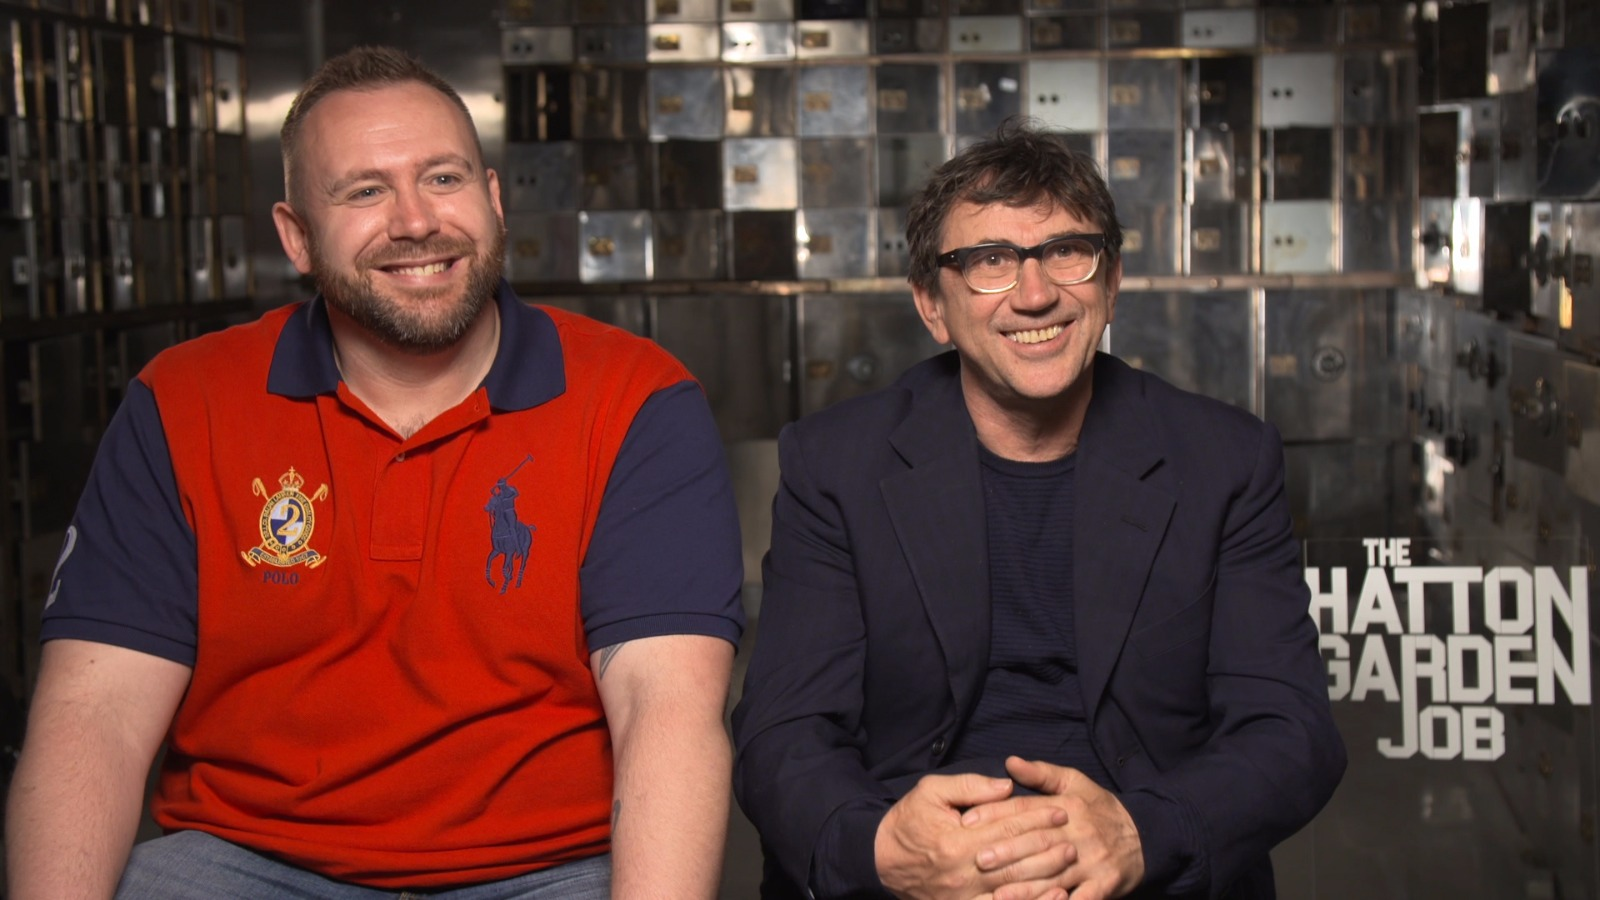 Exclusive Phil Daniels And Director Ronnie Thompson On The Hatton Garden Job